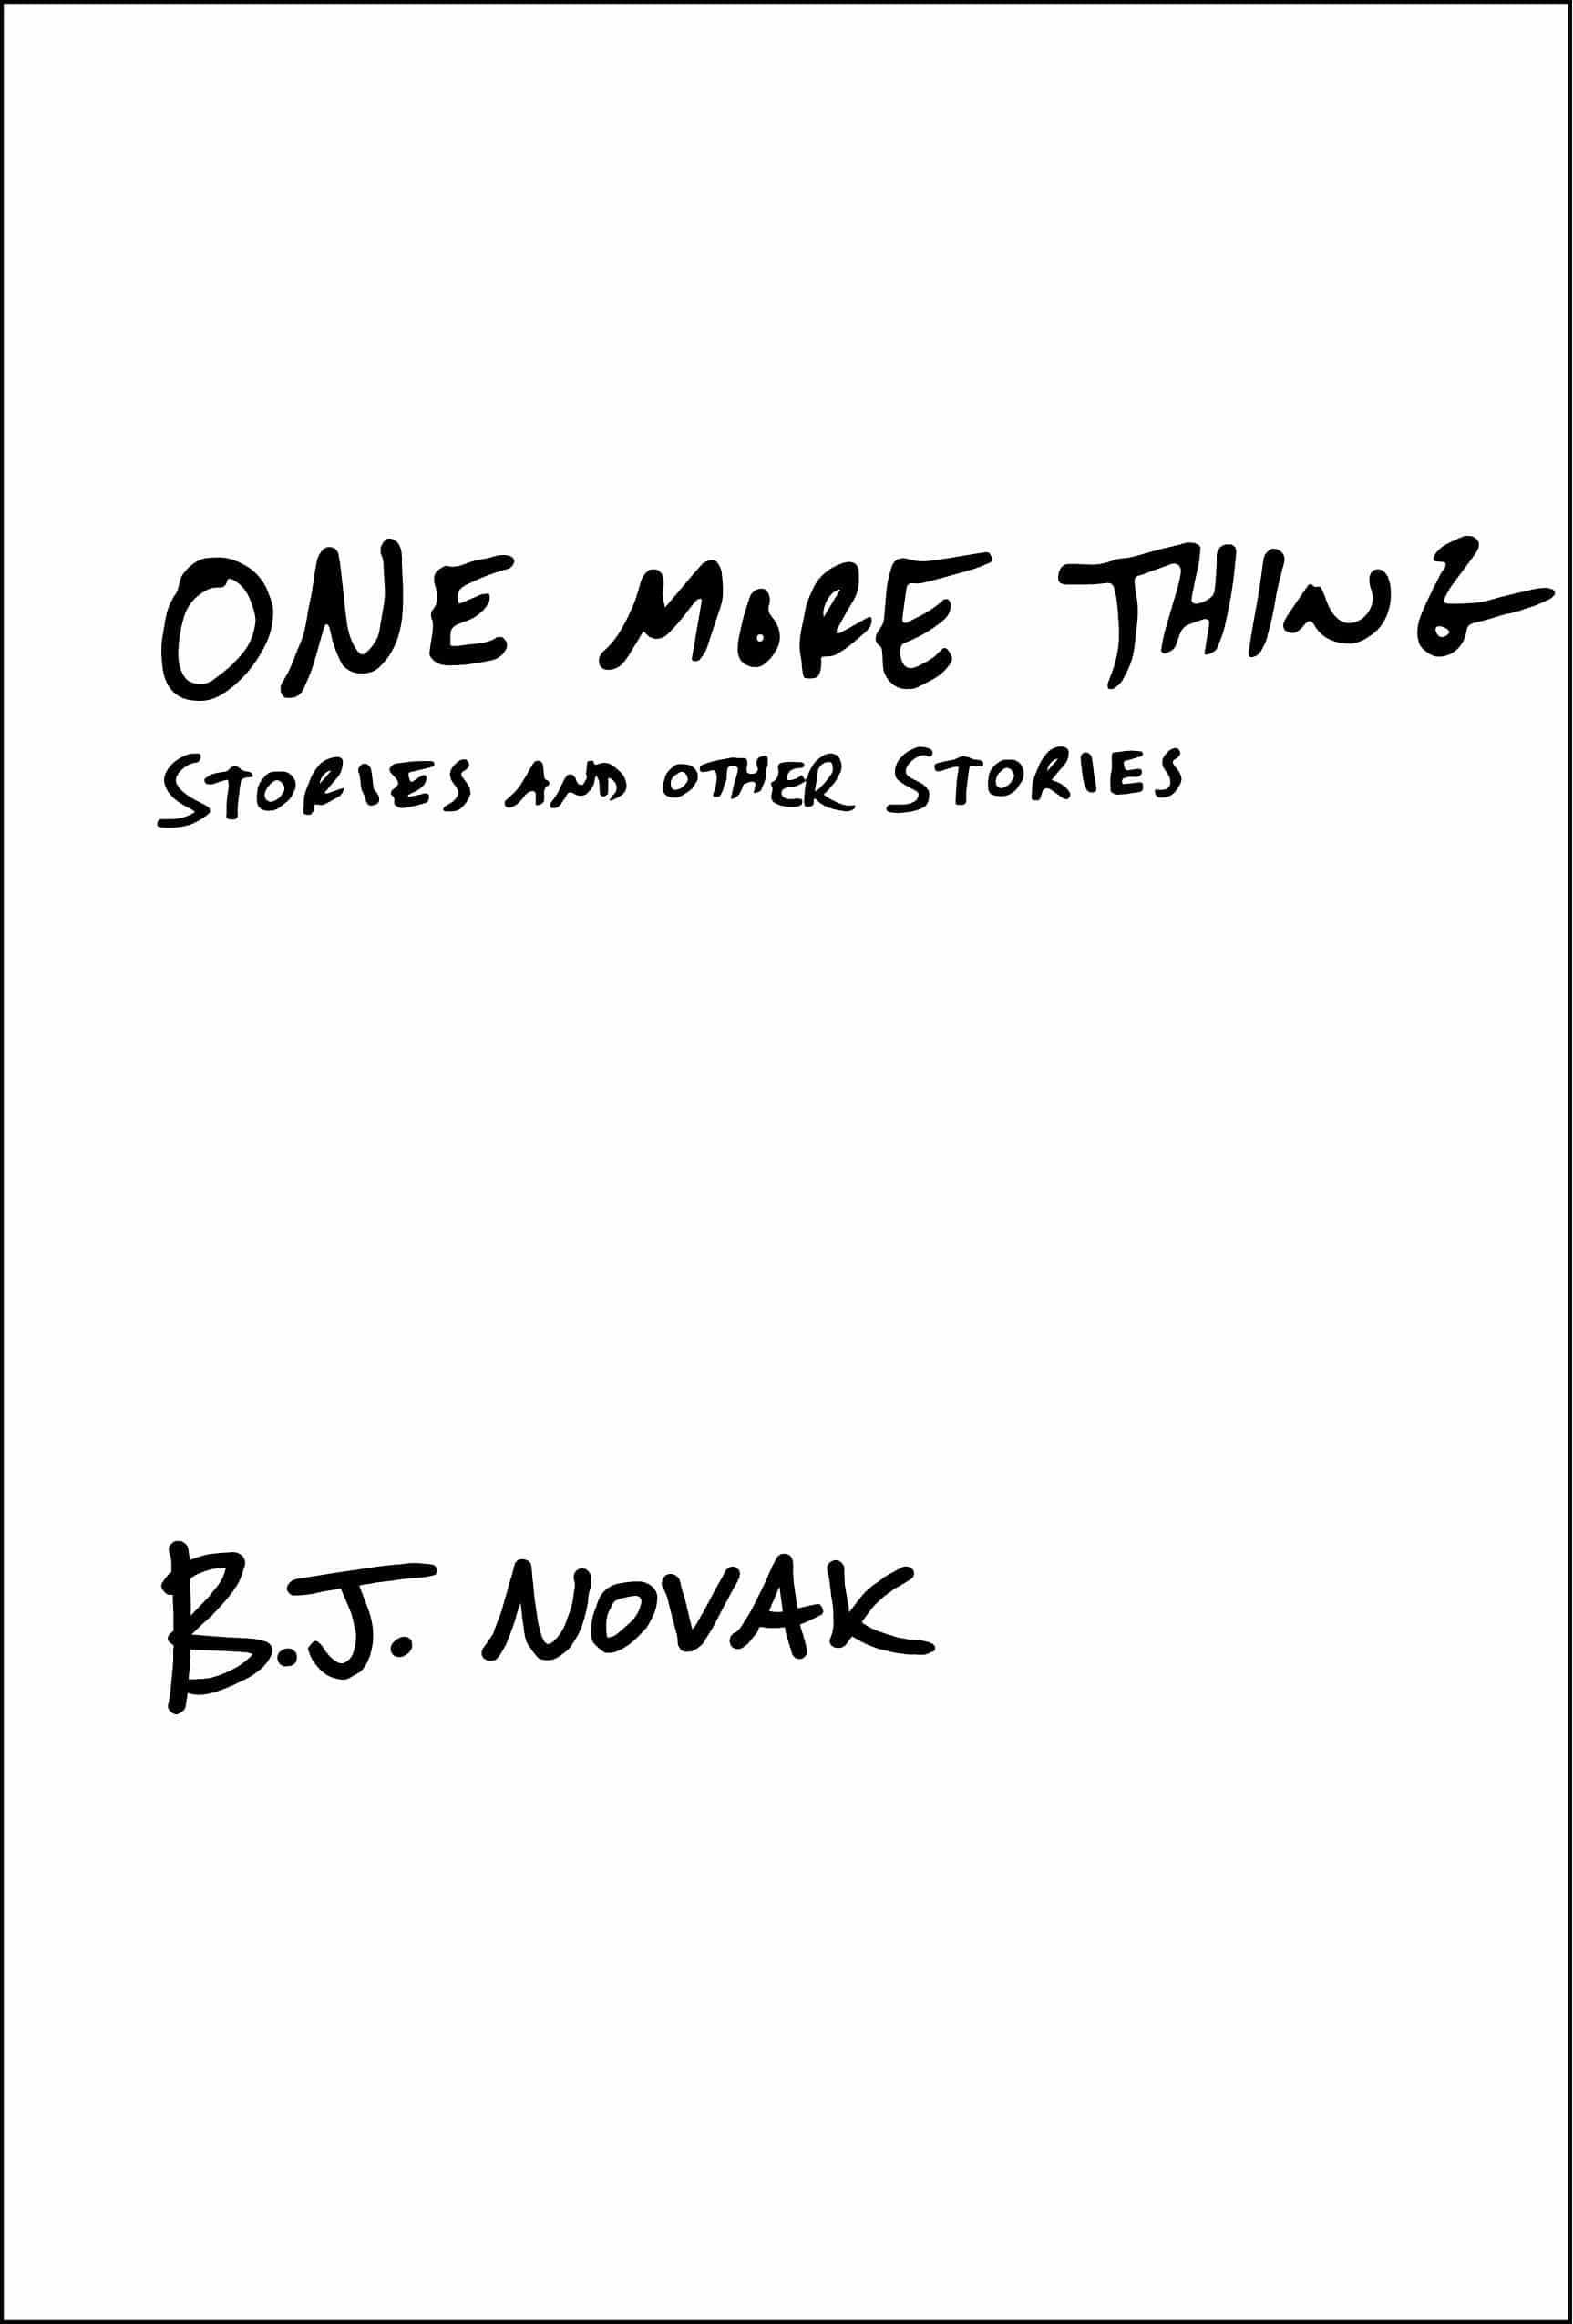 One More Thing book cover